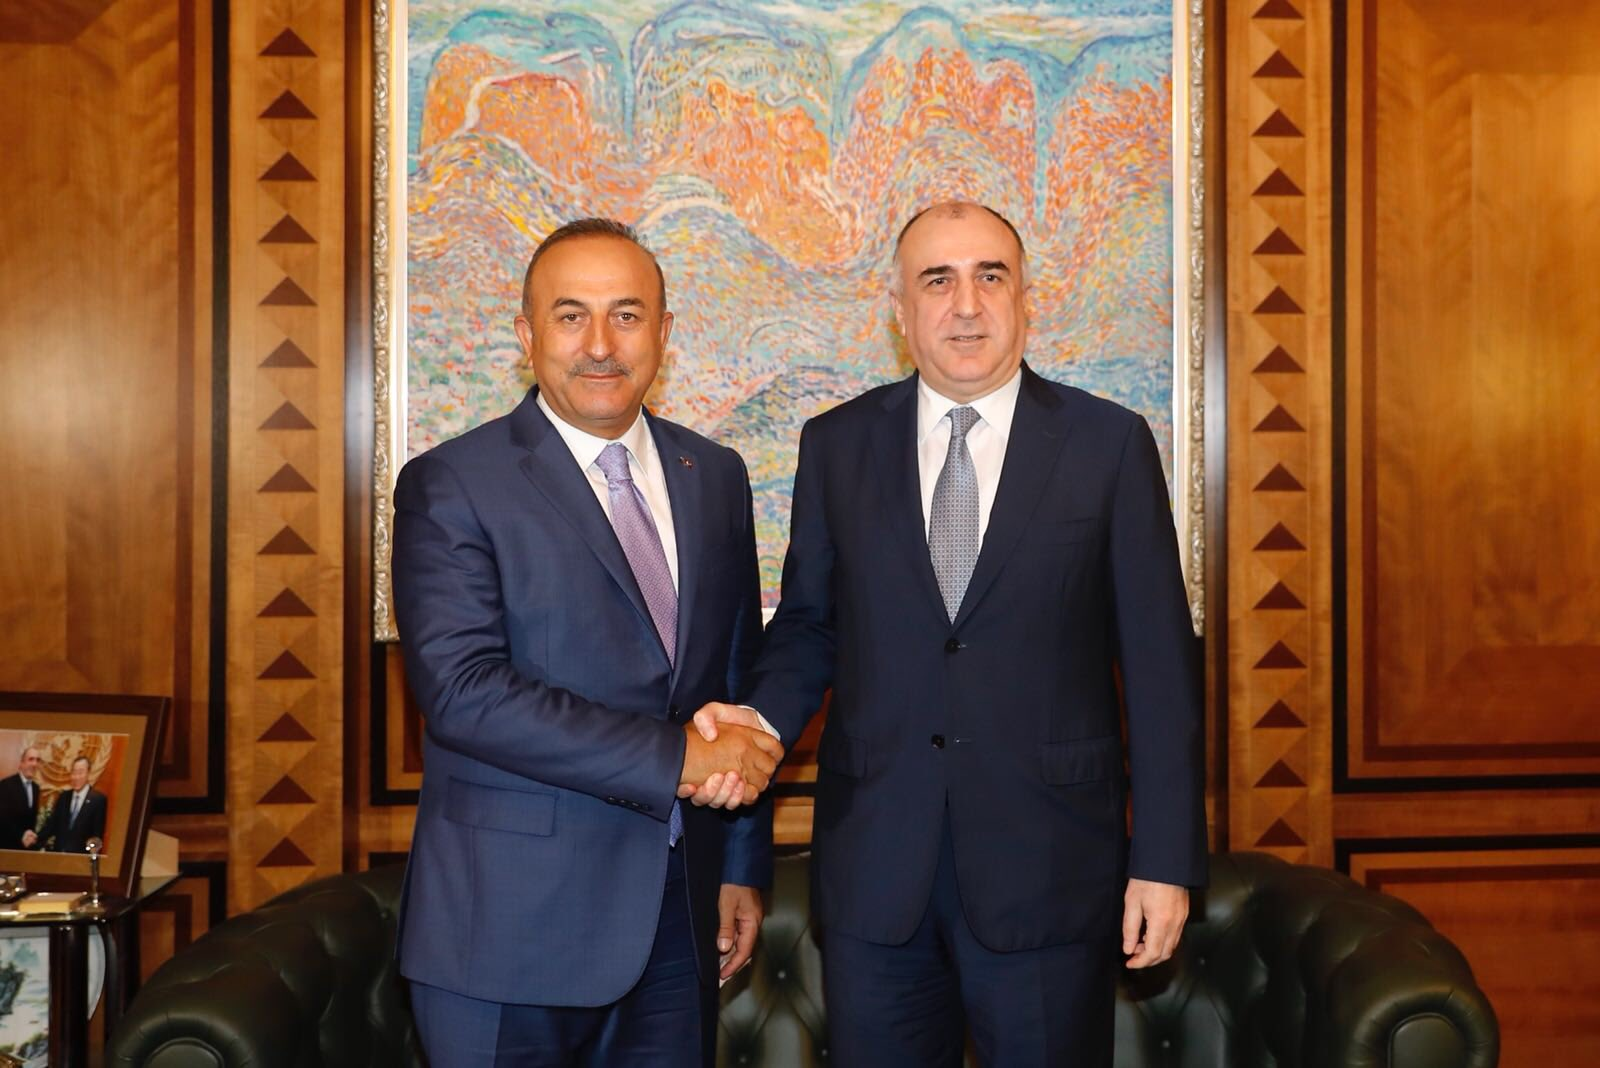 Turkish Foreign Minister Mevlüt Cavuşoğlu and his Azerbaijani counterpart Elmar Mammadyarov meet in Baku on July 24. (photo: https://twitter.com/TC_Disisleri)